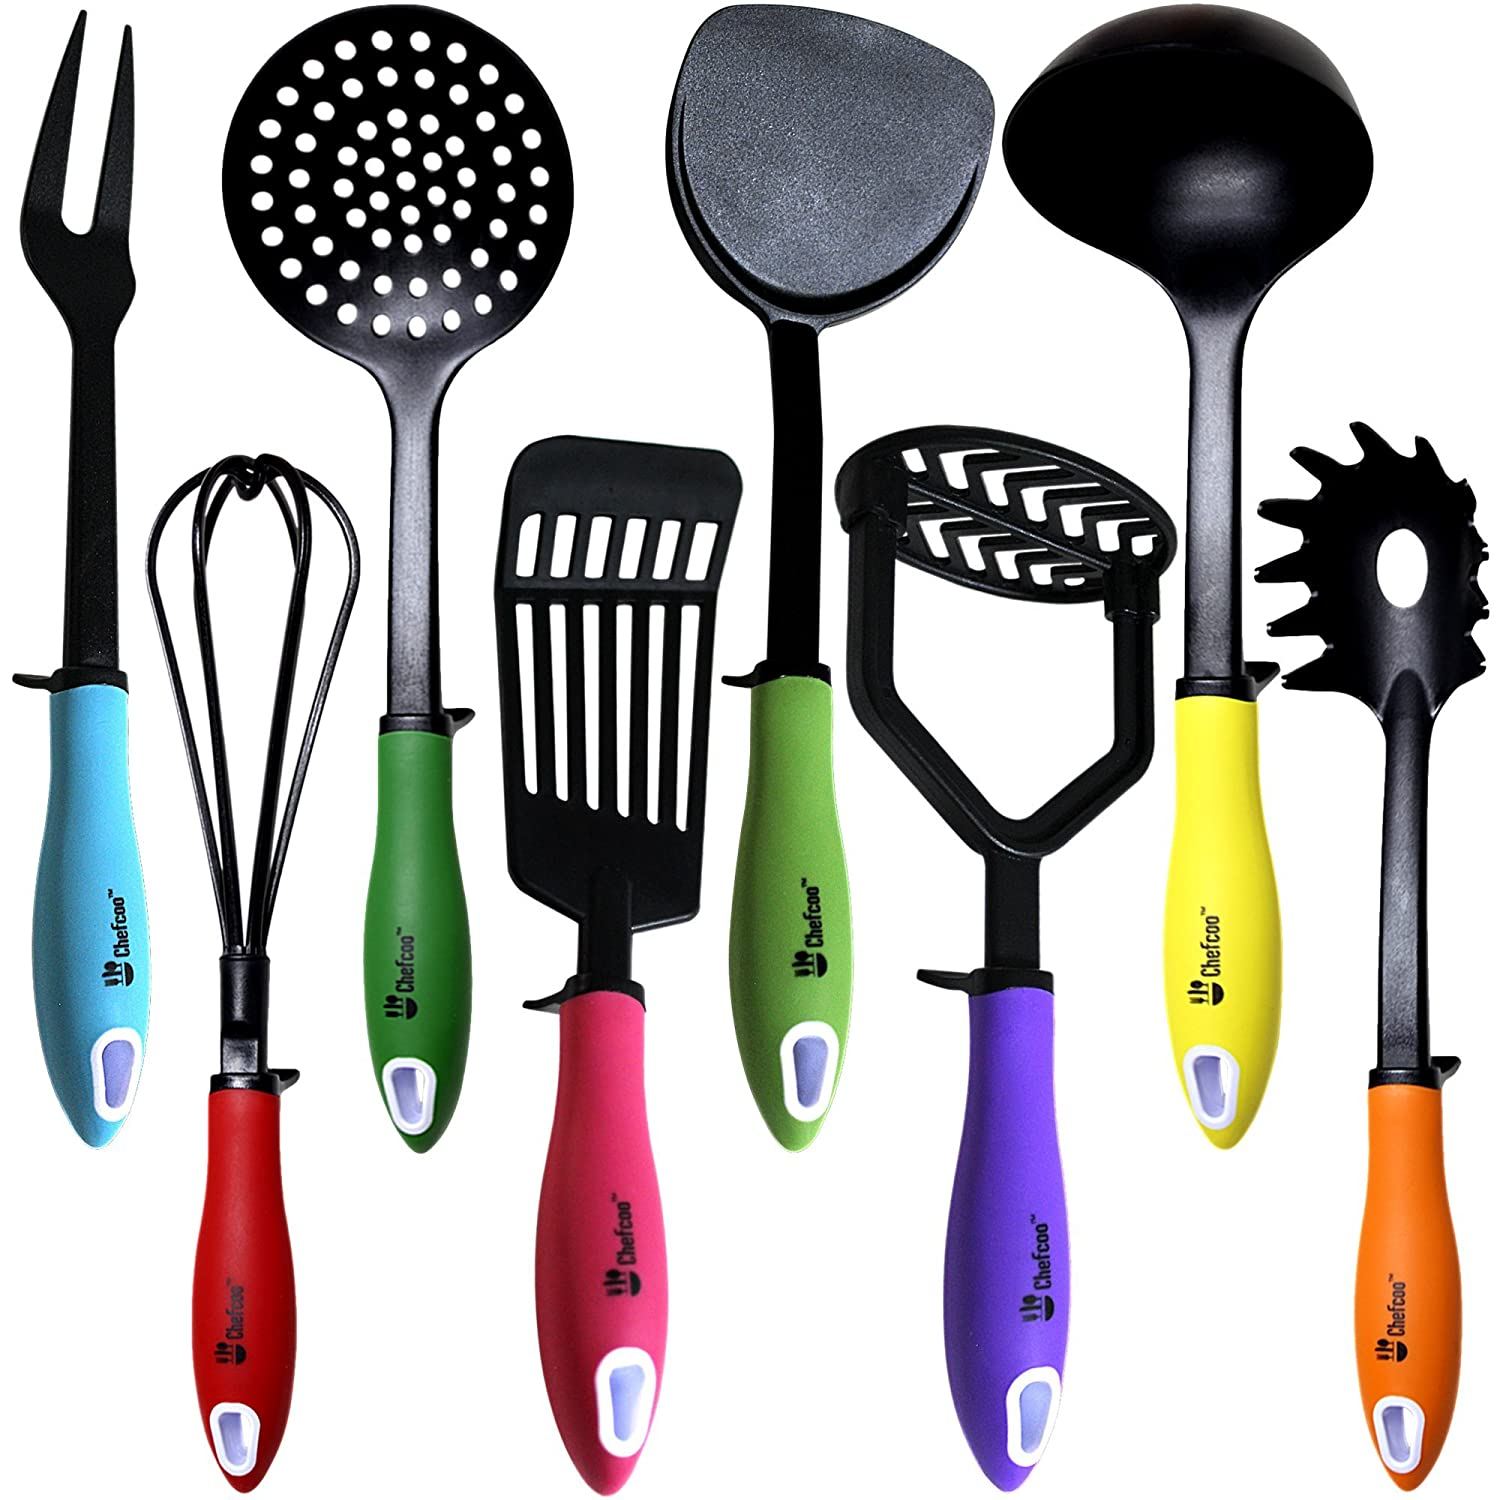 colorful kitchen utensils. If You Love Colorful Kitchen Utensils, Look No Further. The Chefcoo Appliances Have Nylon Heads That Won\u0027t Scratch Your Prized Cookware. Utensils C